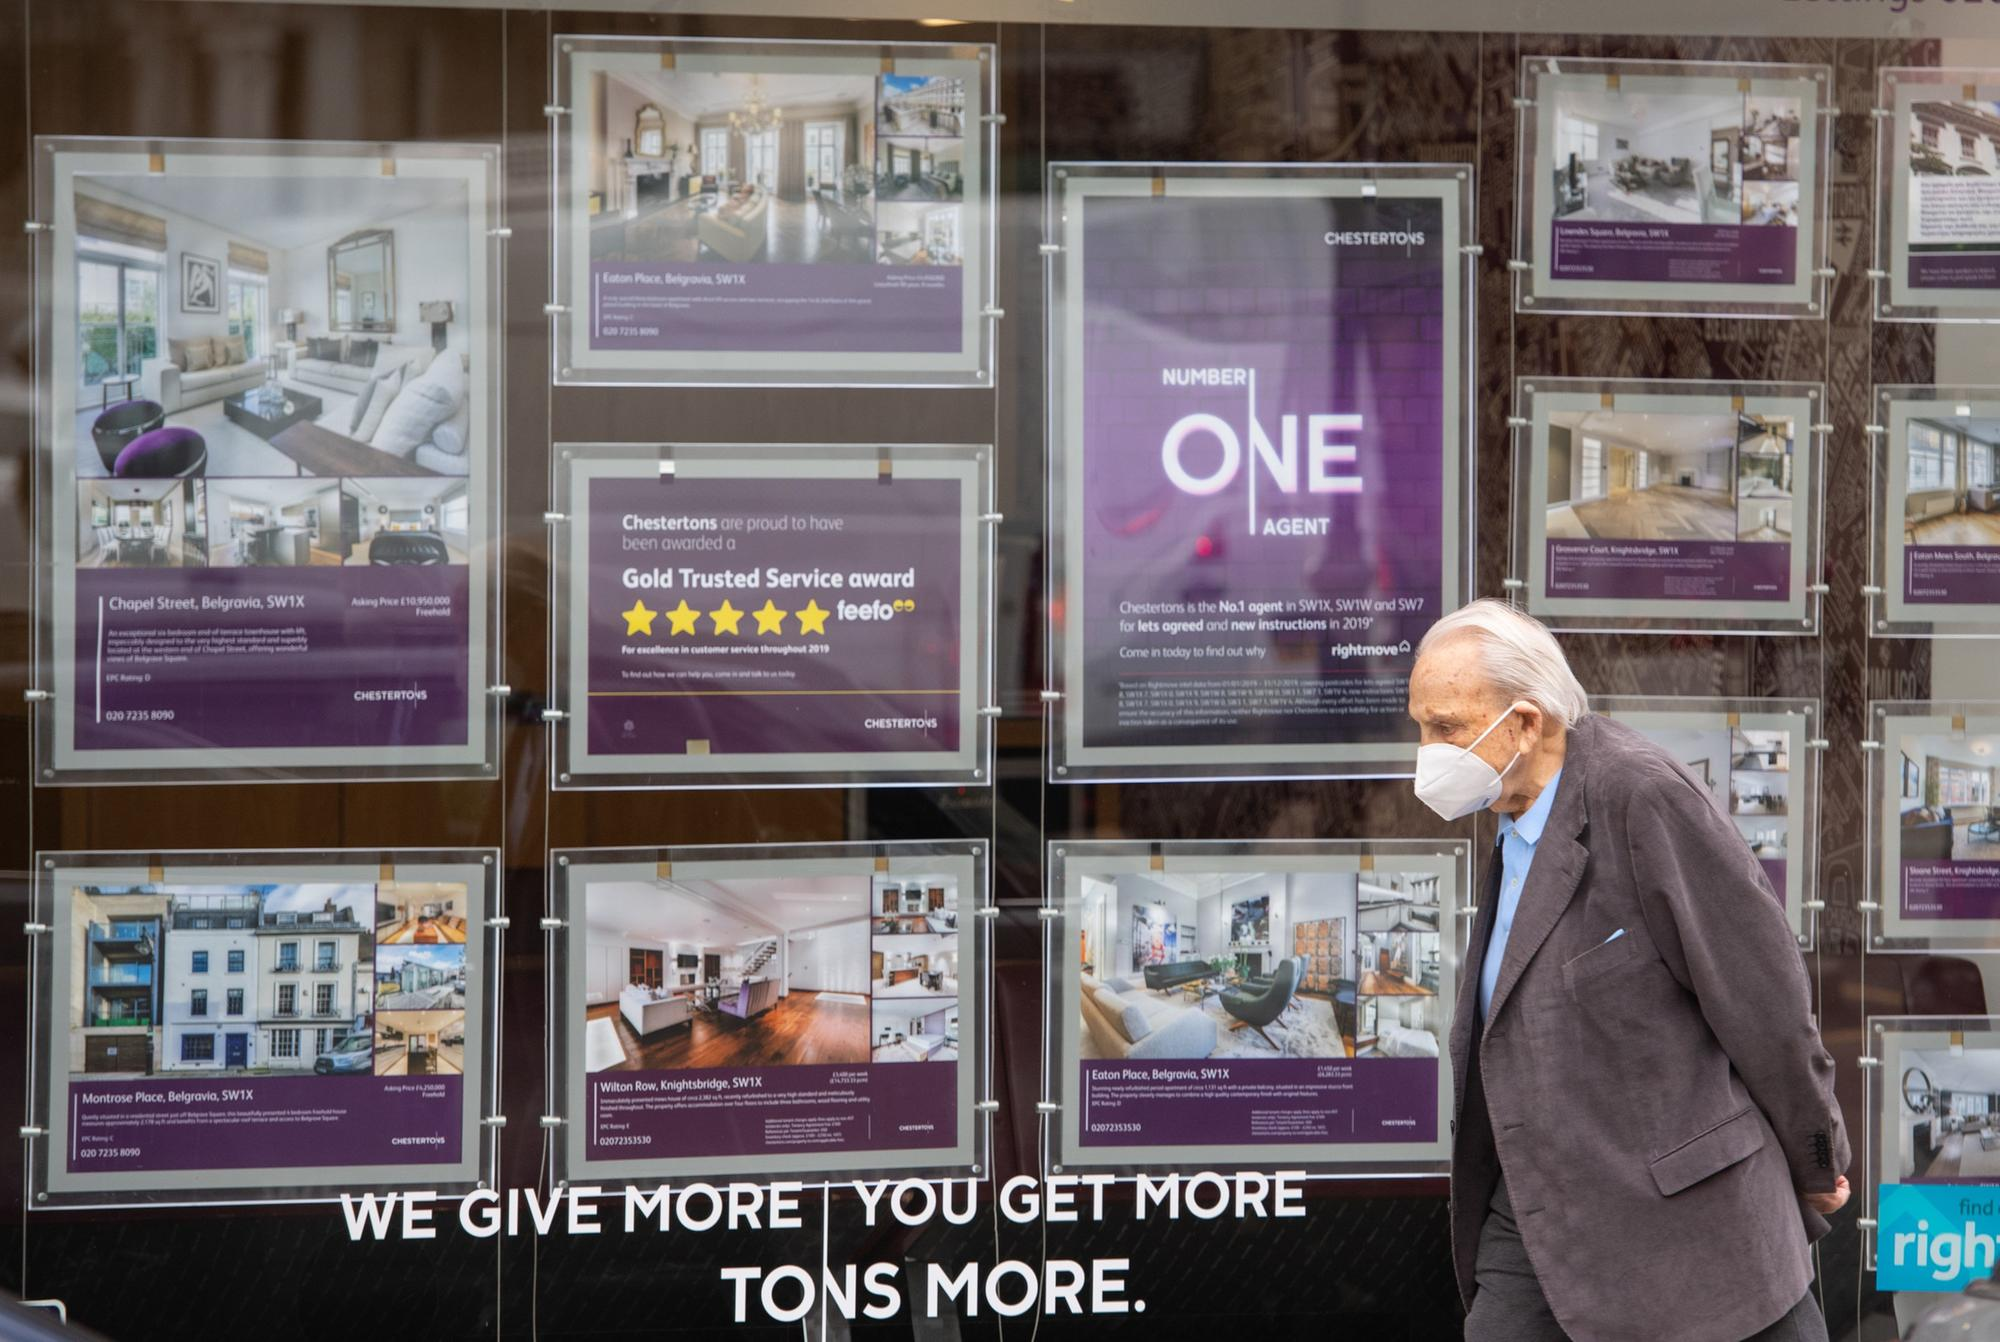 'Surge' in interest in Scottish homes from London buyers as market reopens